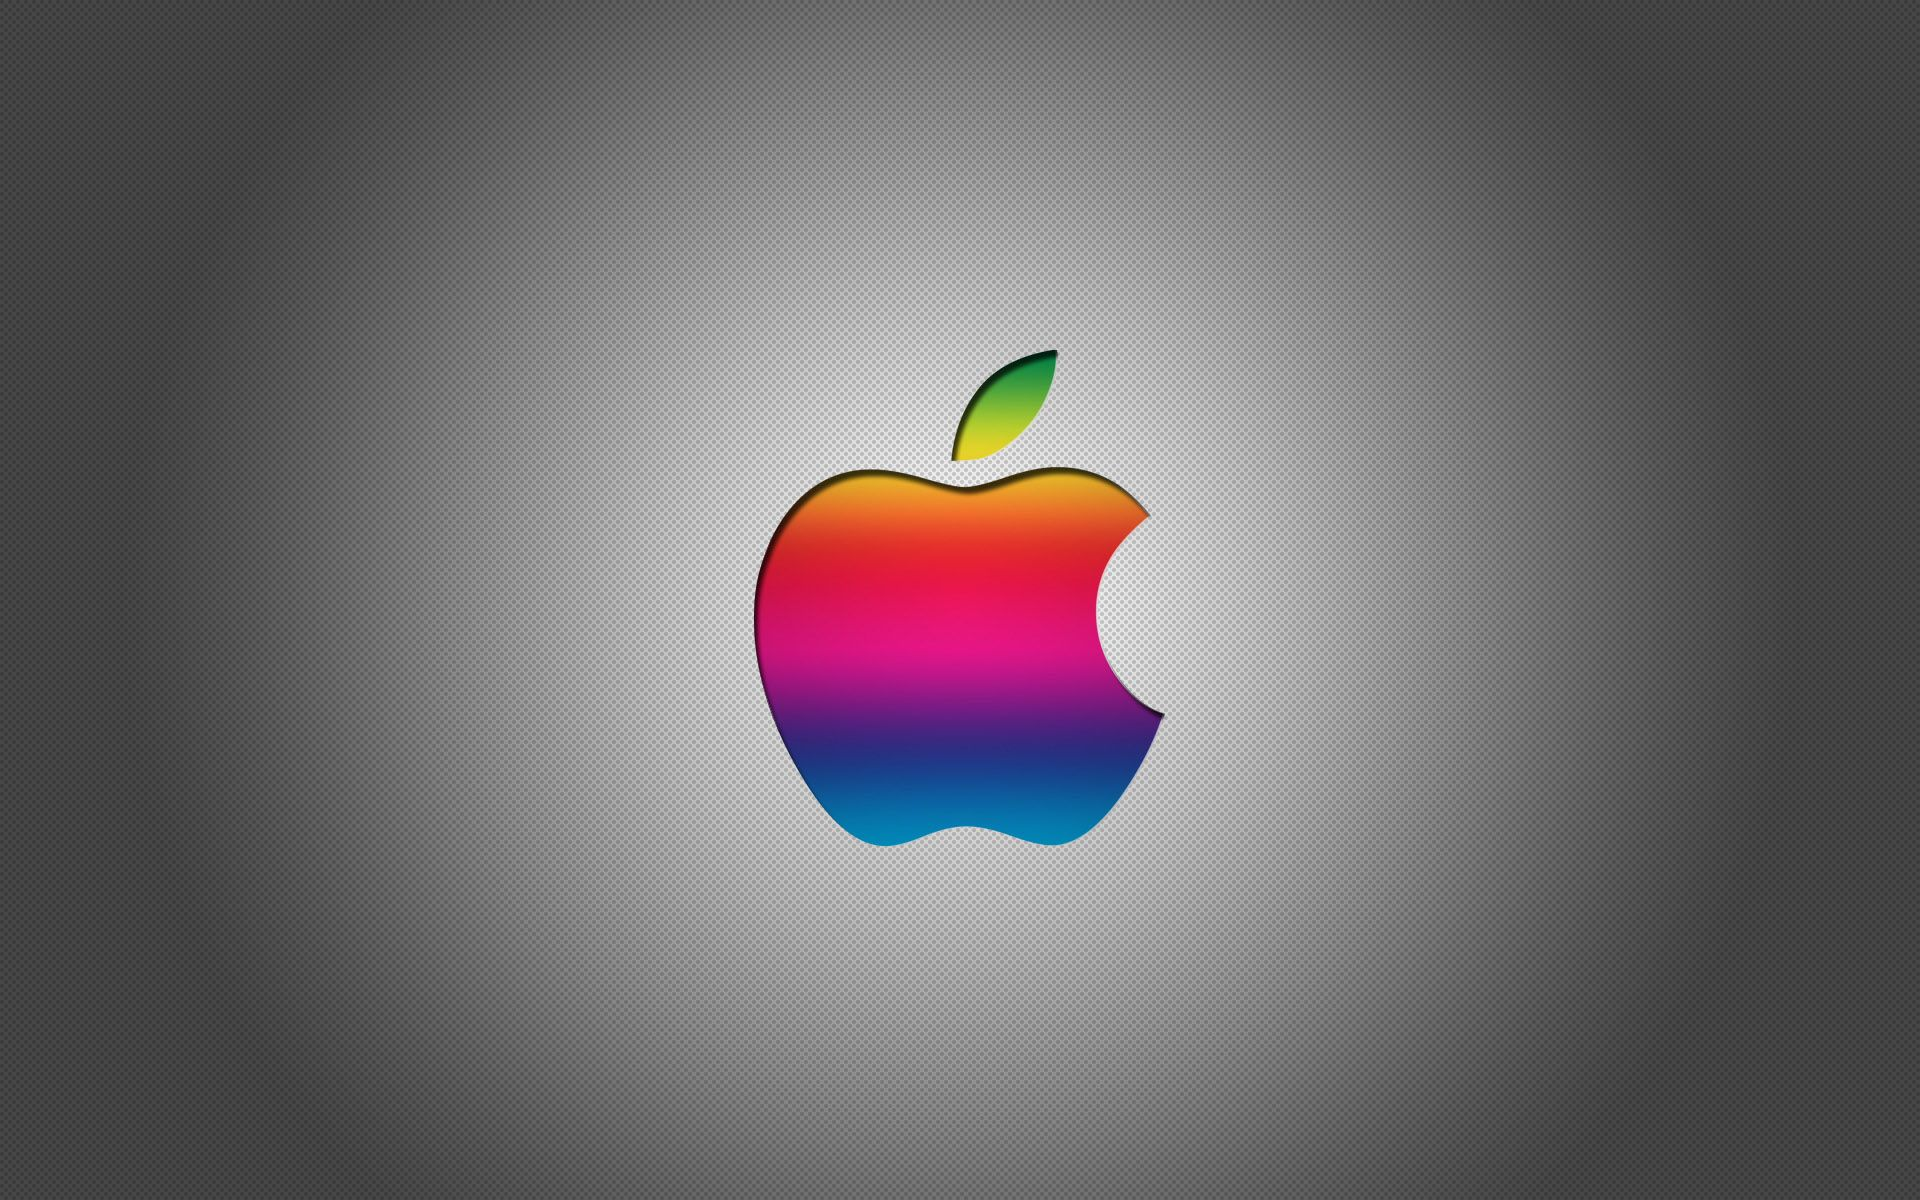 Pin by Sharon Adkins on Metal Apple Apple logo wallpaper 1920x1200